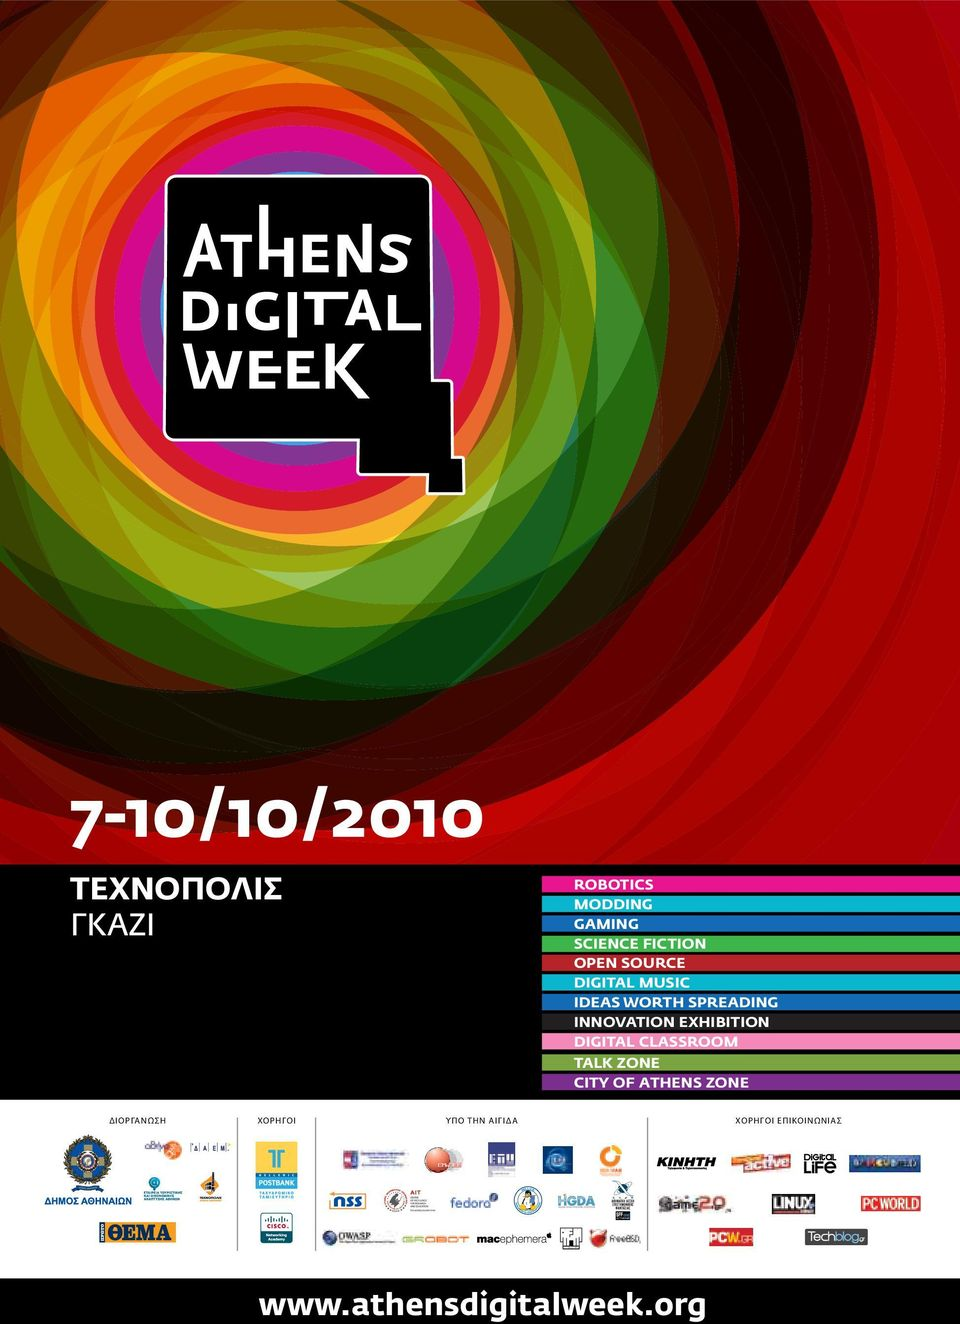 EXHIBITION DIGITAL CLASSROOM TALK ZONE CITY OF ATHENS ZONE